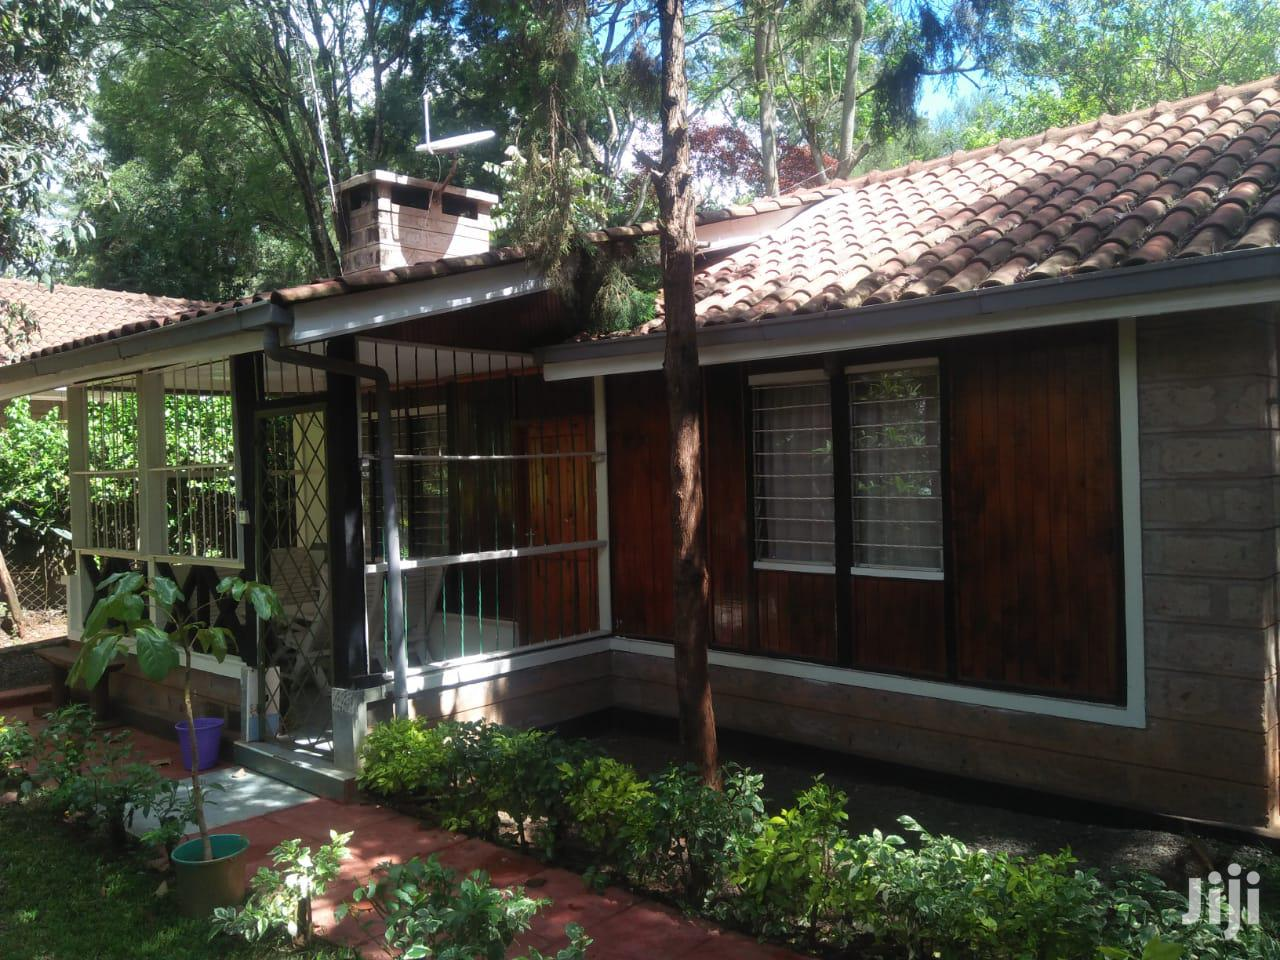 Karen Cosy Colonial 2br Cottage With Mature Garden   Houses & Apartments For Rent for sale in Karen, Nairobi, Kenya